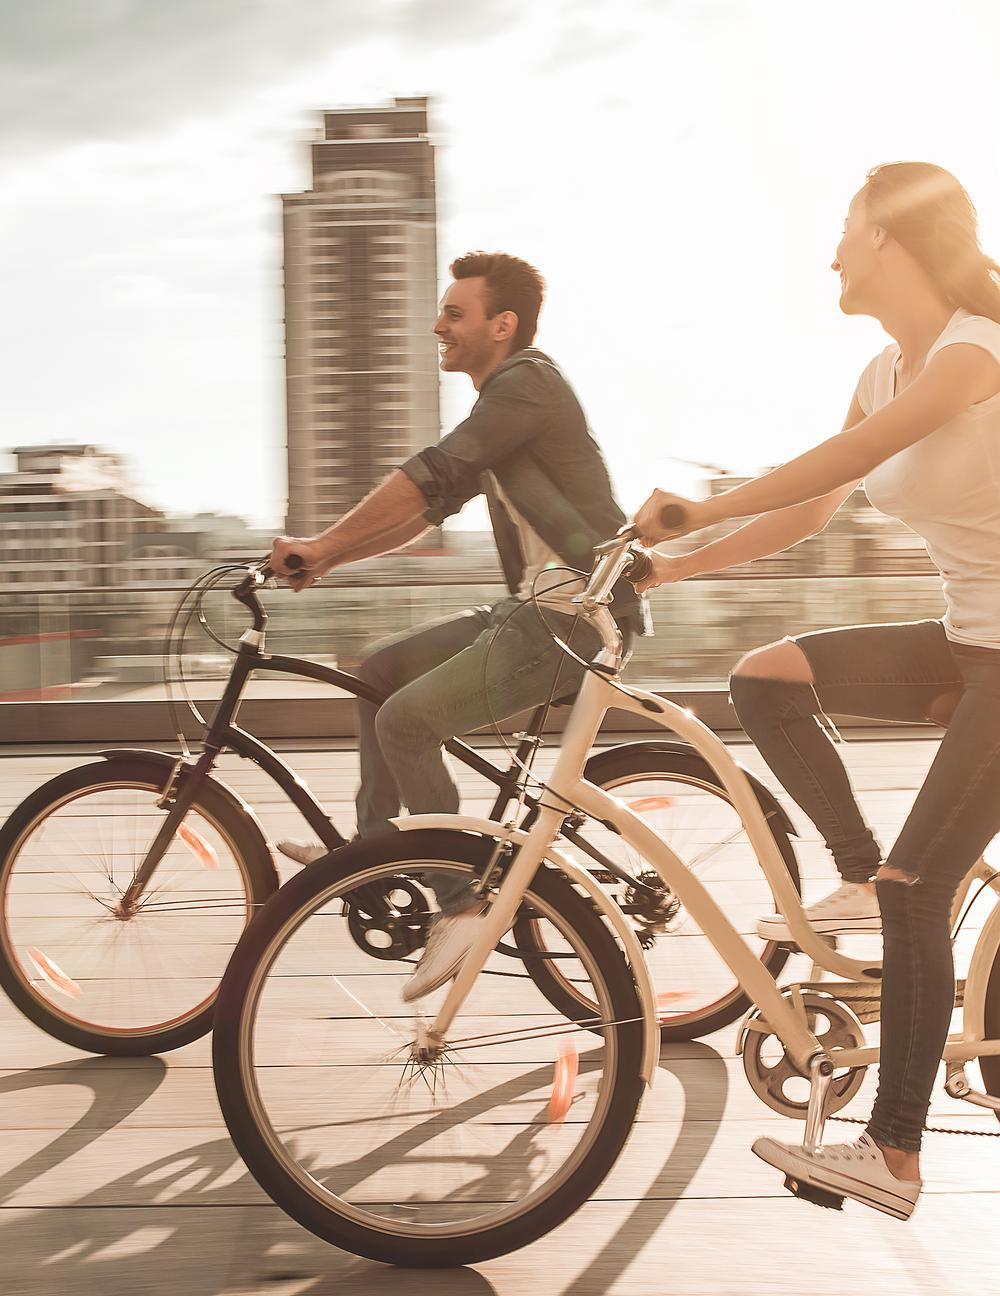 Urban design can take the lead to create places that benefit citizens' health / shutterstock